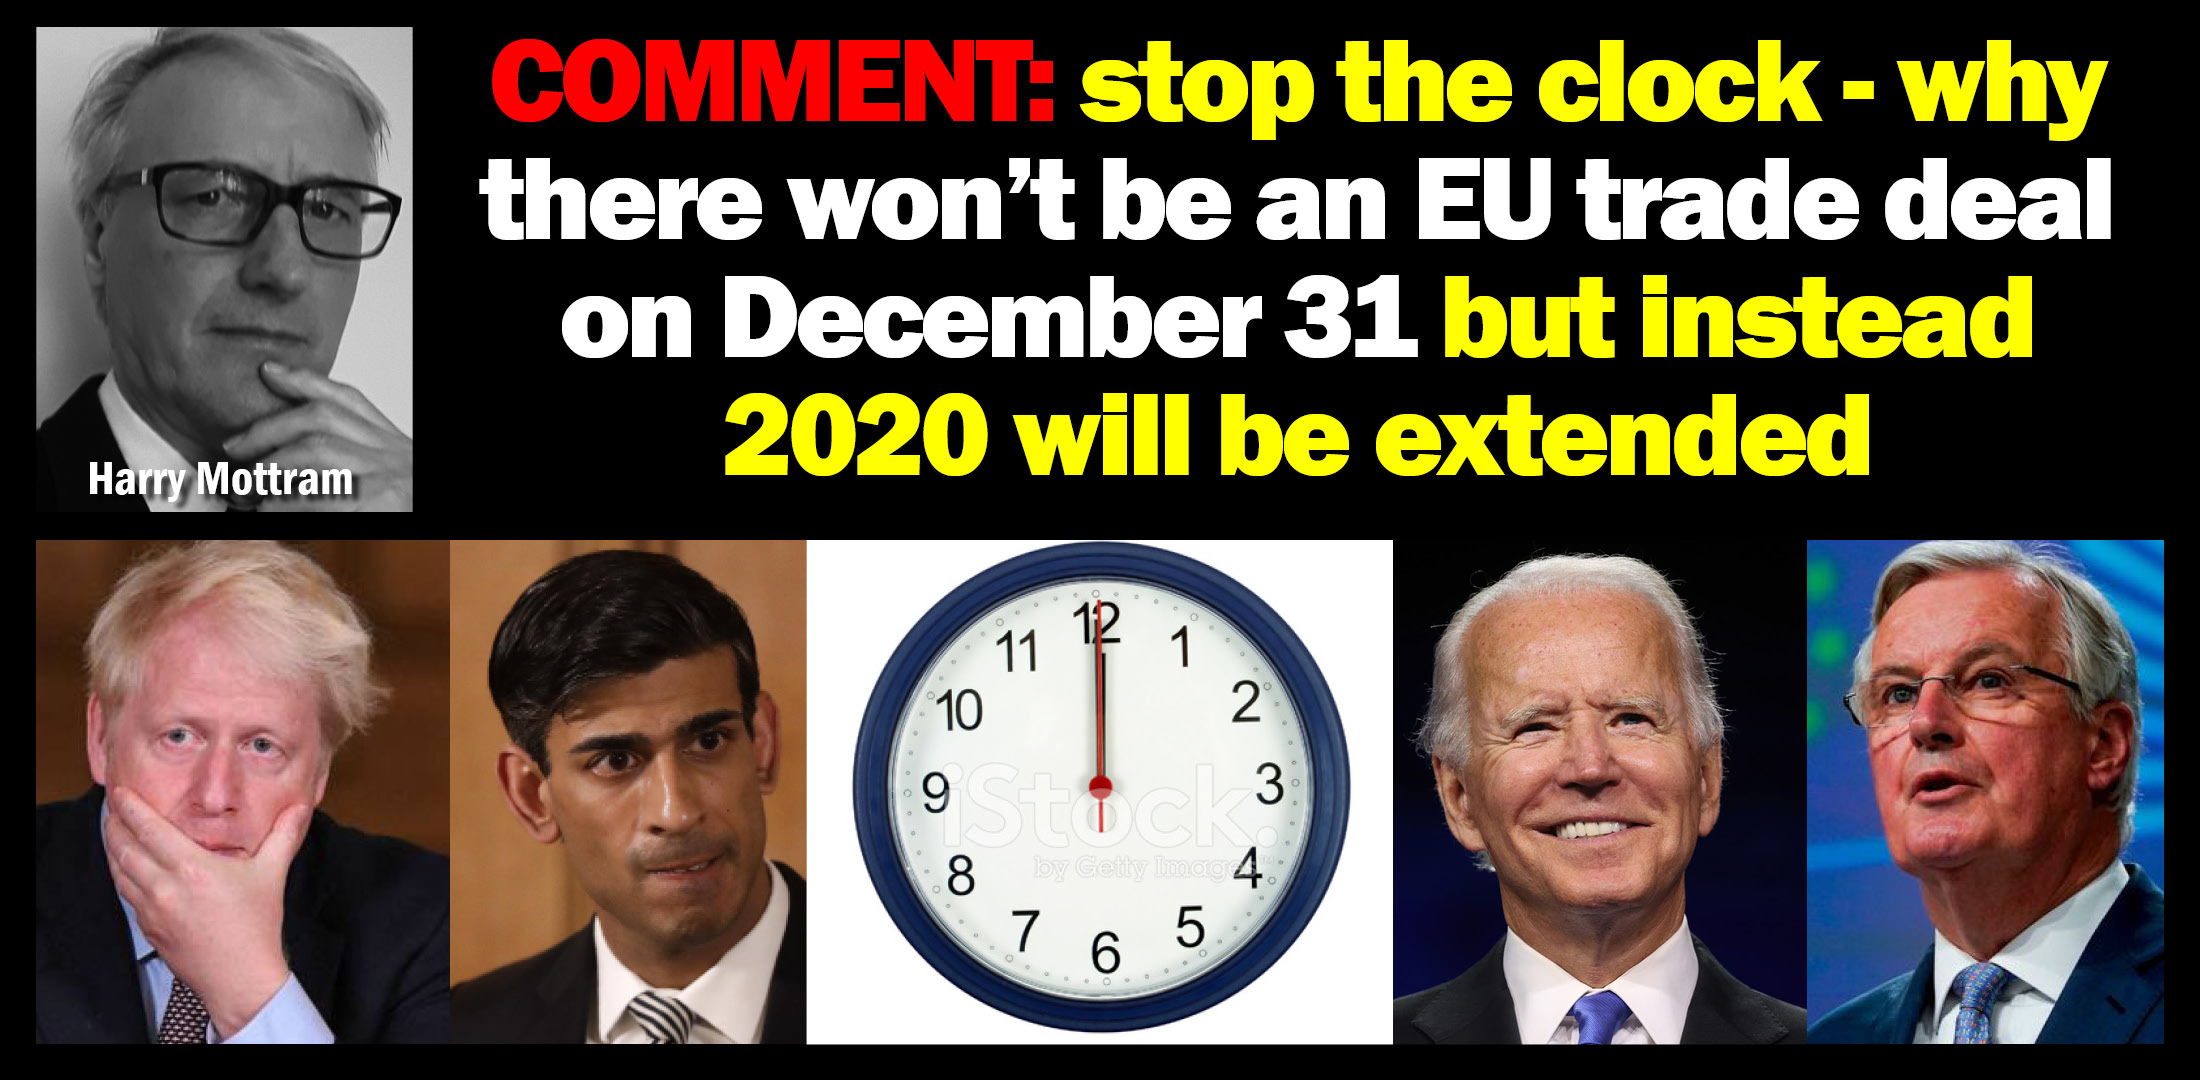 AGENDA WEST COMMENT: Stop the clock – why there won't be an EU trade deal on December 31 but instead 2020 will be extended